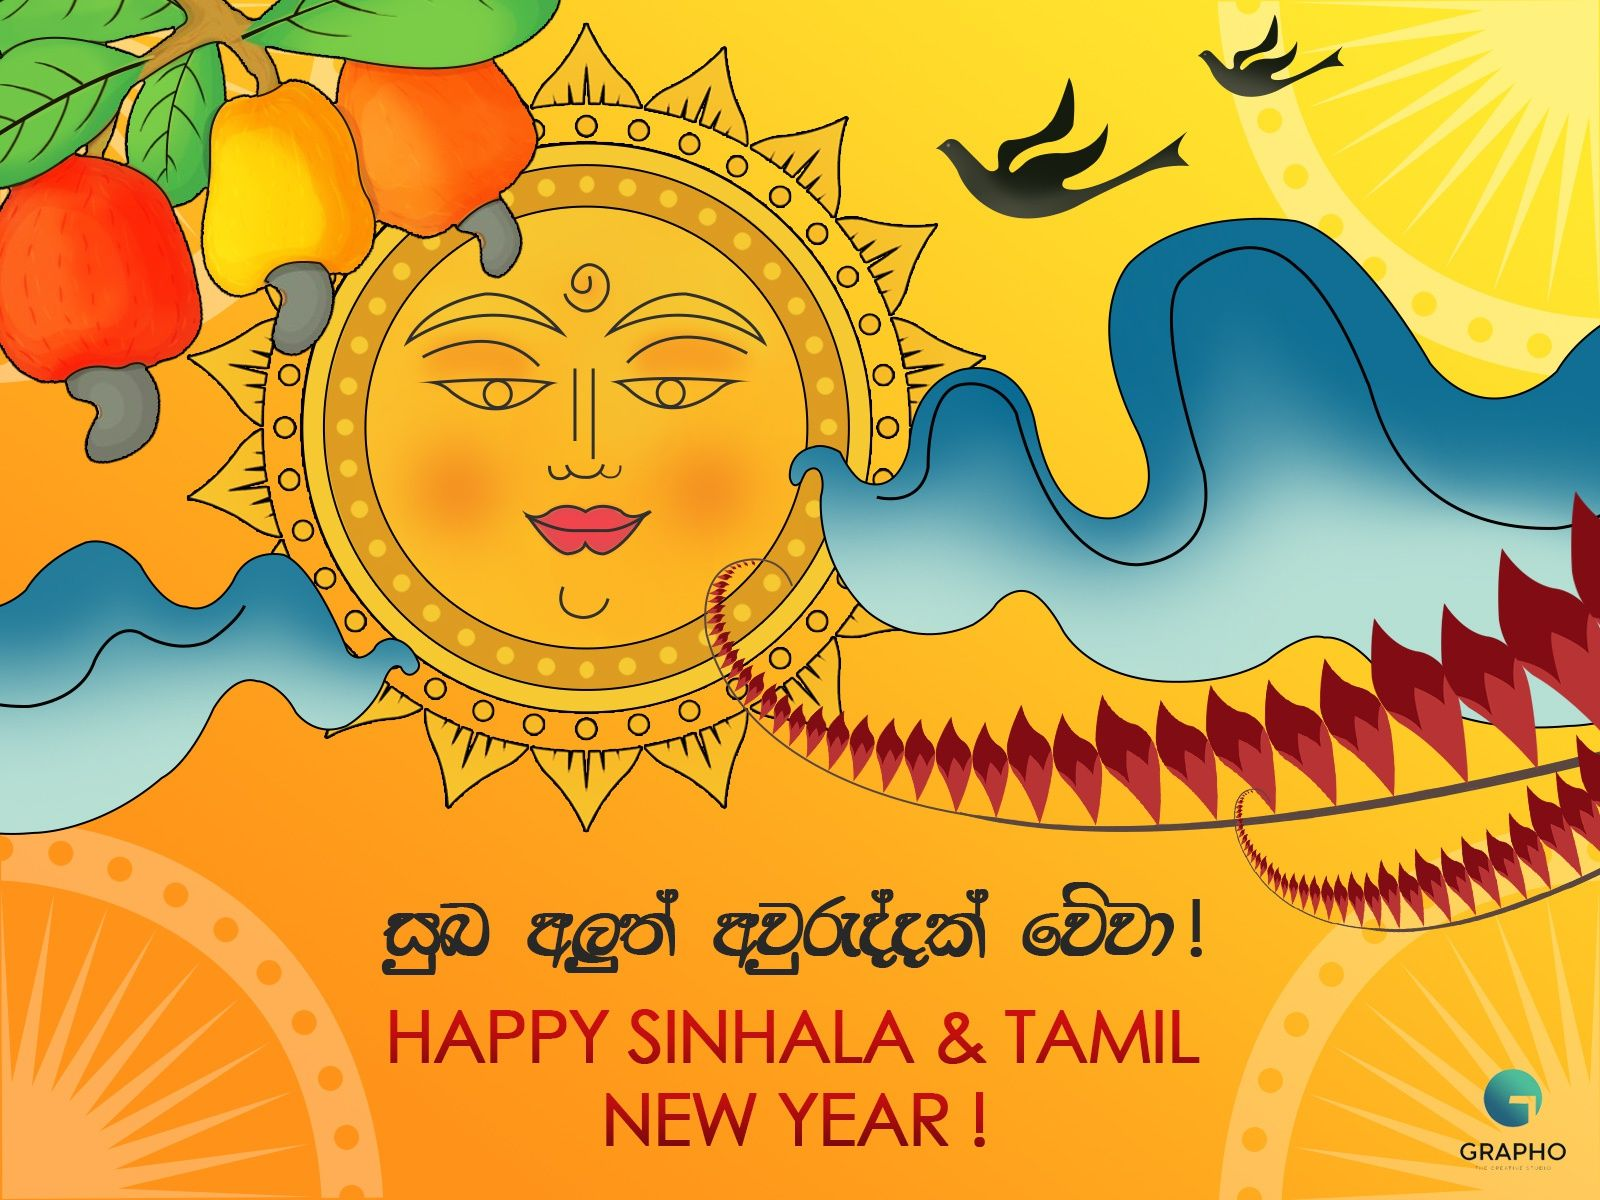 Sinhala And Tamil New Year Wish By Grapho Creative Studio In 2020 New Year Wishes Creative Studio Sinhala Tamil New Year